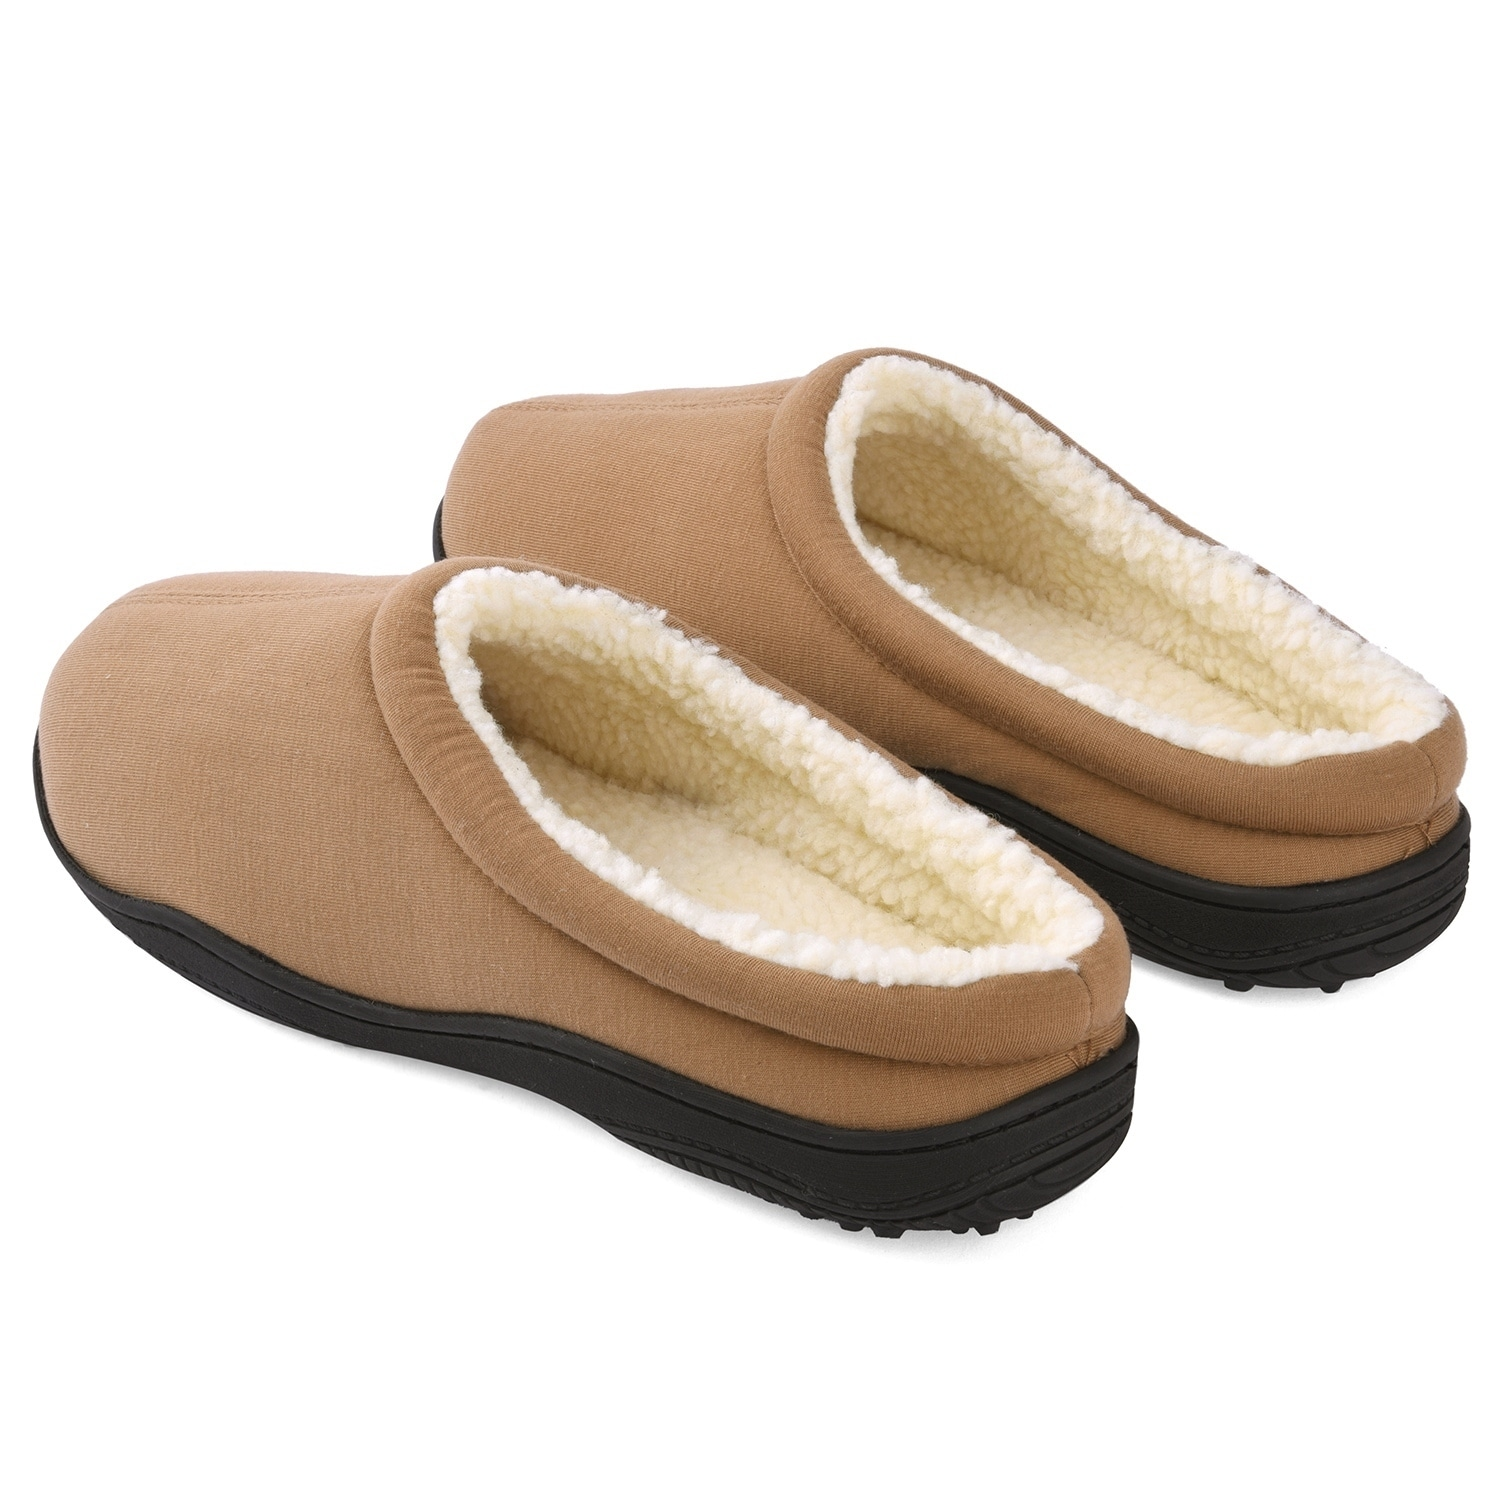 Medium, Black Sole Selection Clogs Shoes Fur Lined Slippers Winter Breathable Indoor Outdoor Walking Warm Non-Slip House Shoes for Men